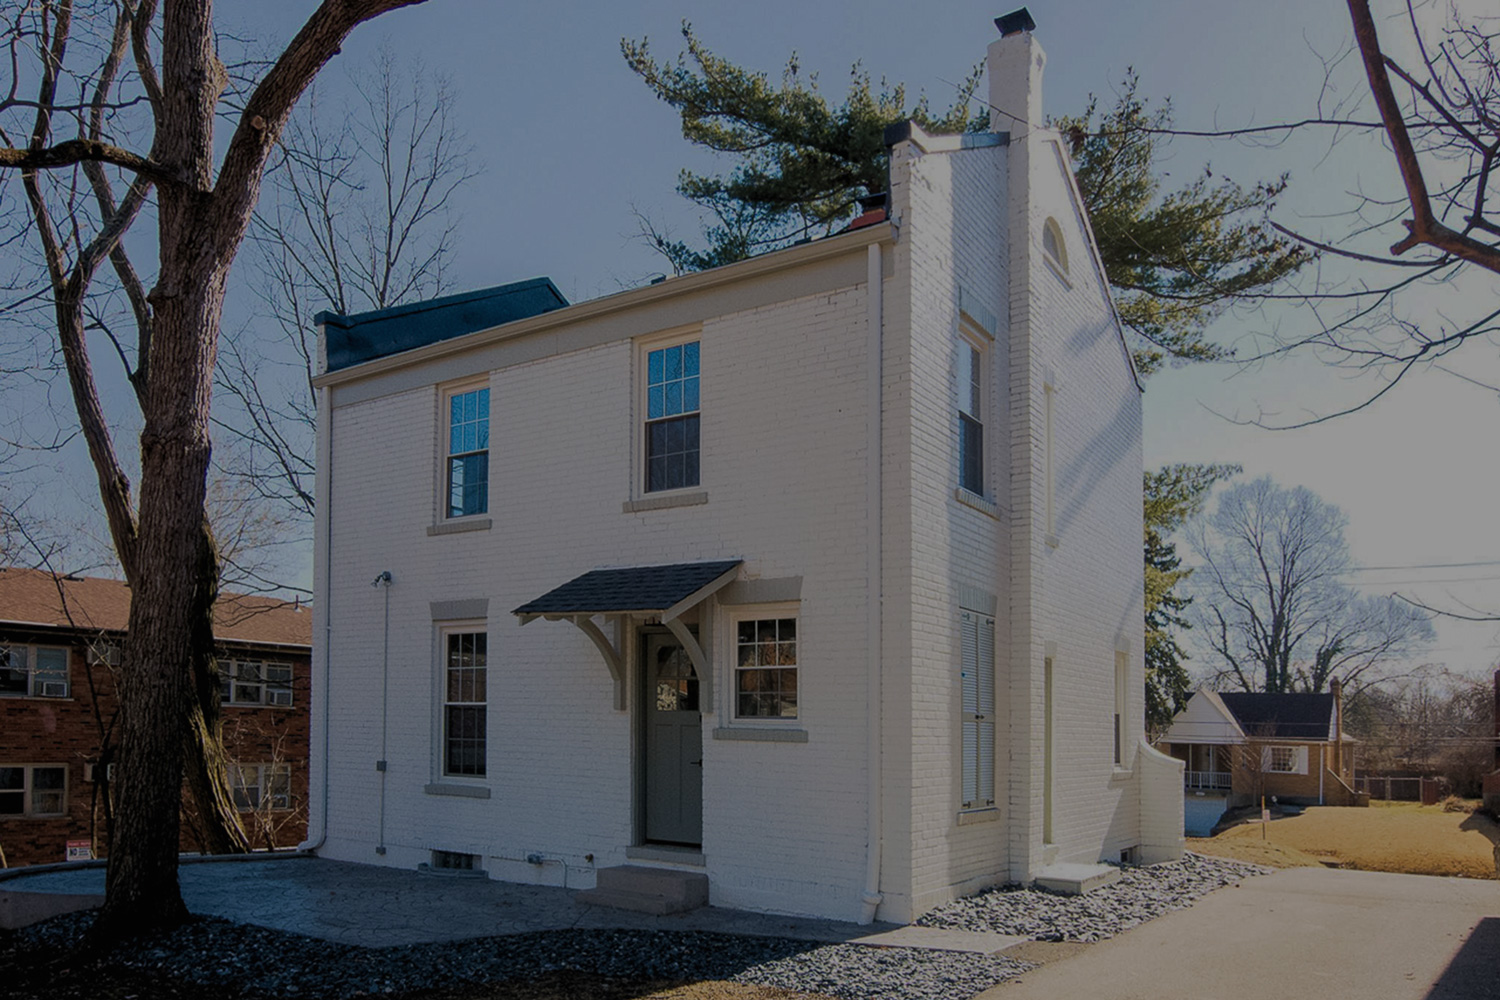 3440 Woodford Rd - 1920s-ERA HOME GIVEN MODERN FACELIFT